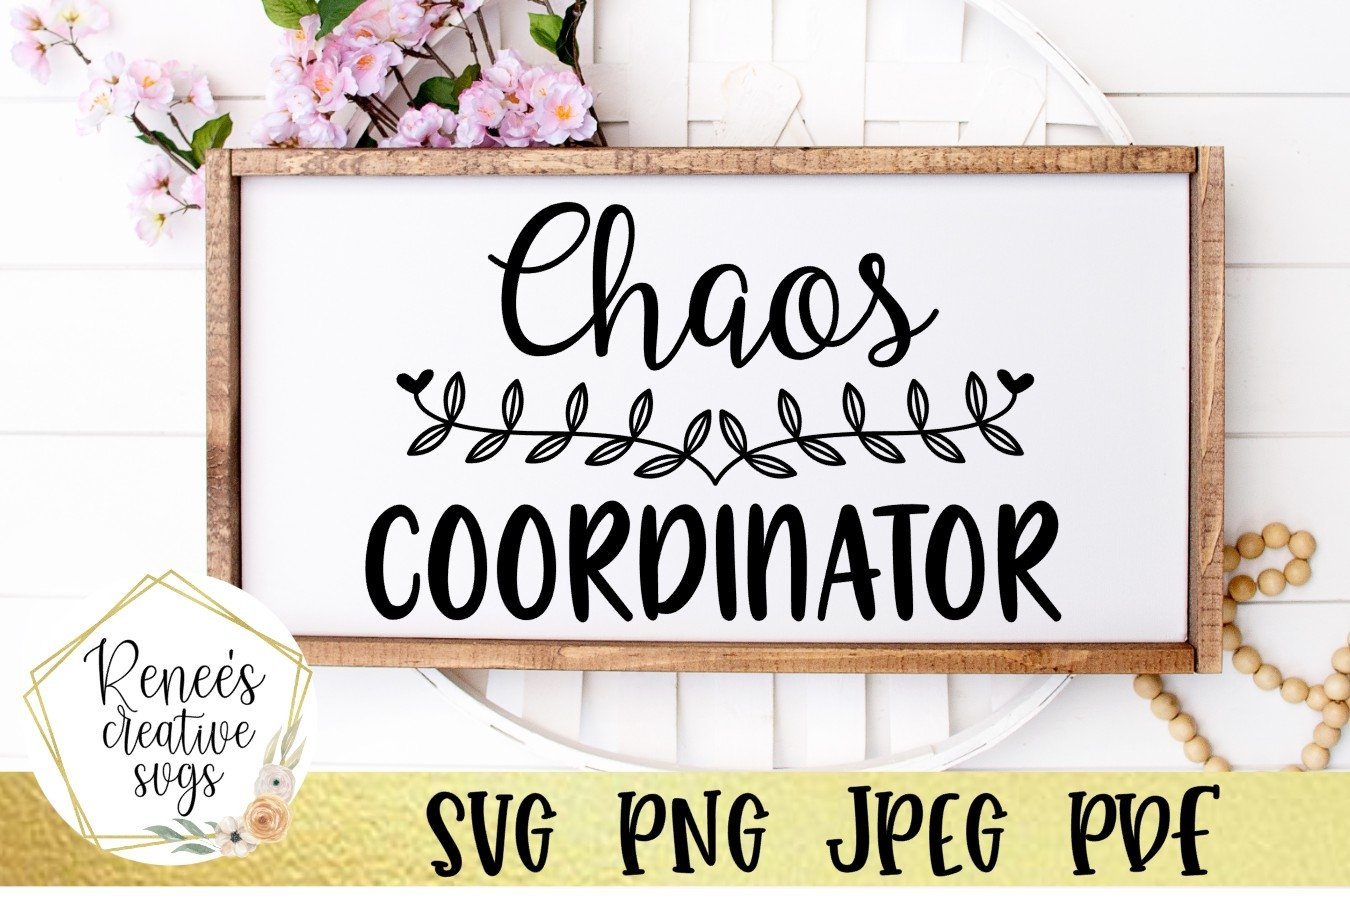 Chaos Coordinator | Humor | SVG Cutting File example image 2